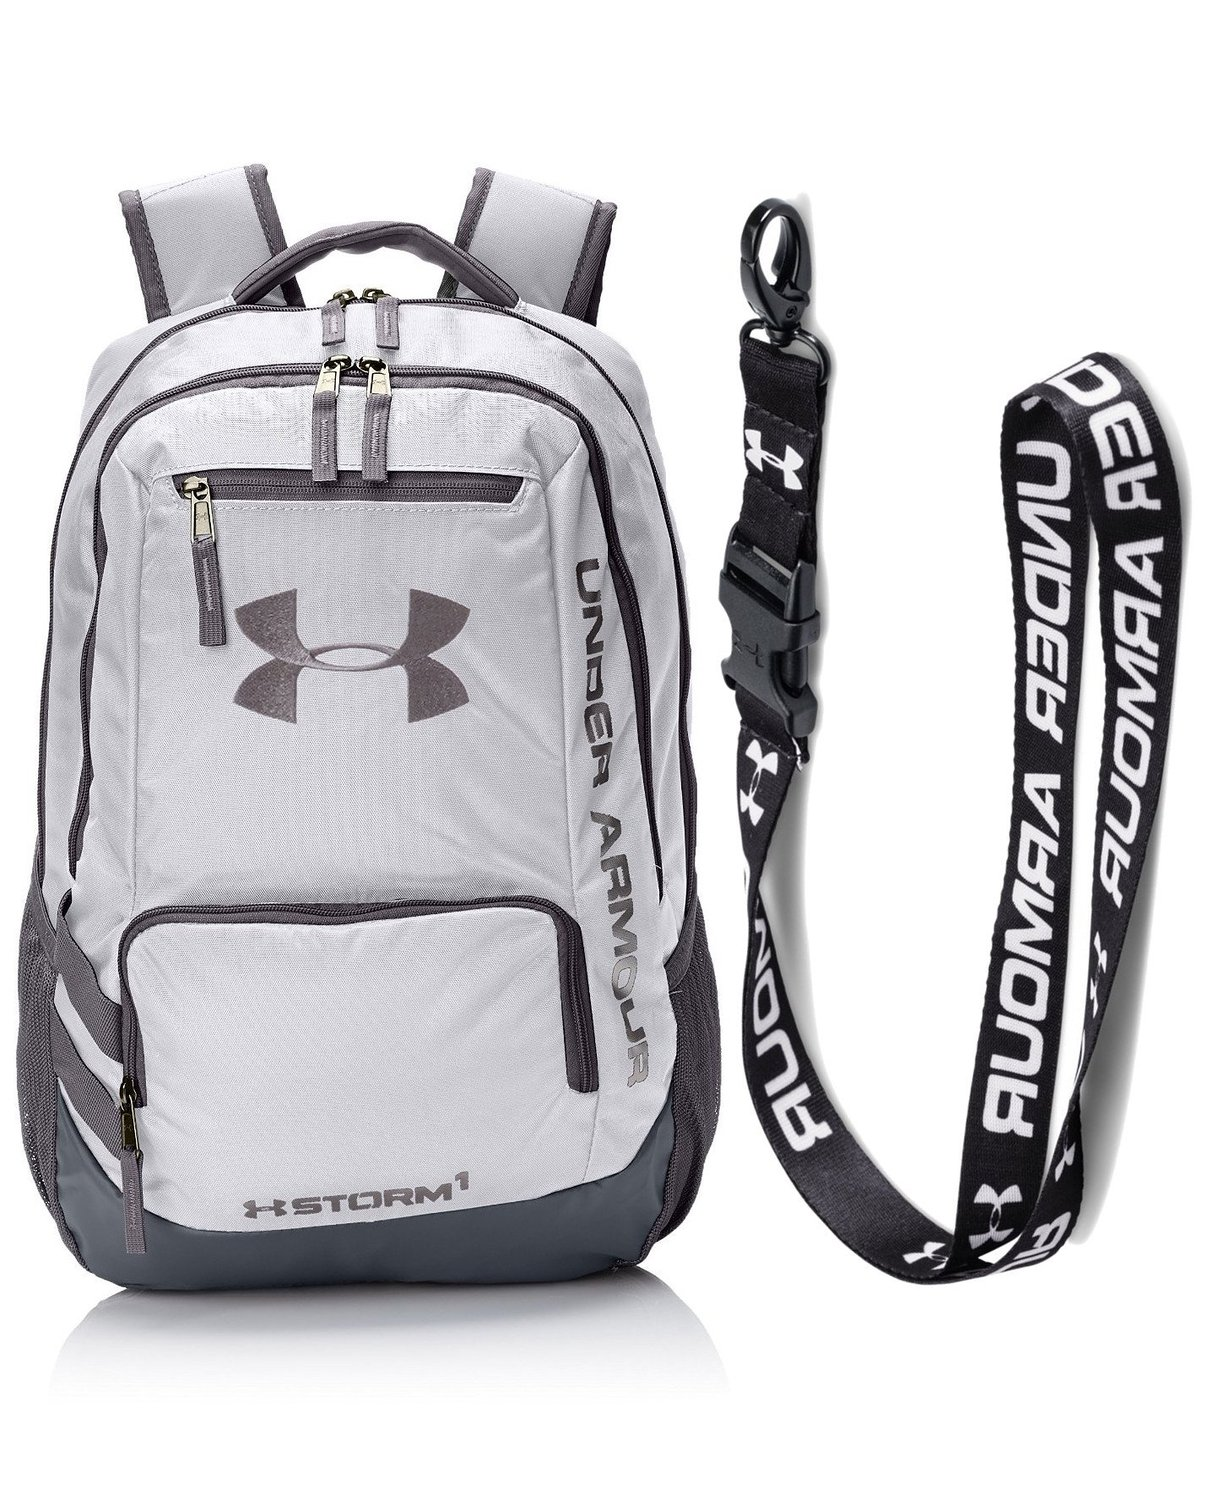 0e9d51d4b3df Get Quotations · Under Armour UA Hustle Backpack II with UA Undeniable  Lanyard